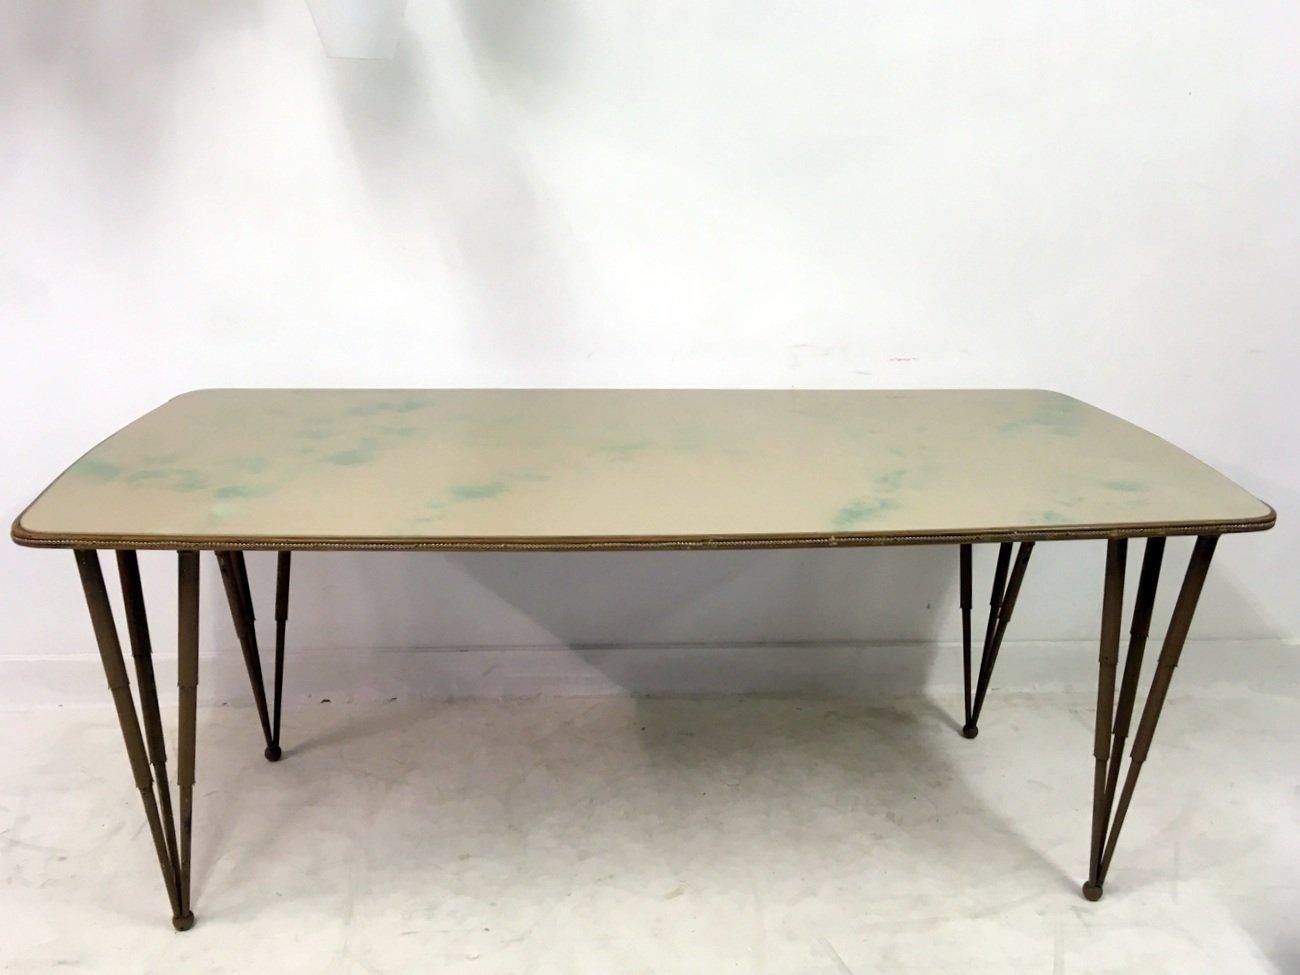 Italian glass topped dining table with metal legs 1950s for Dining table with metal legs